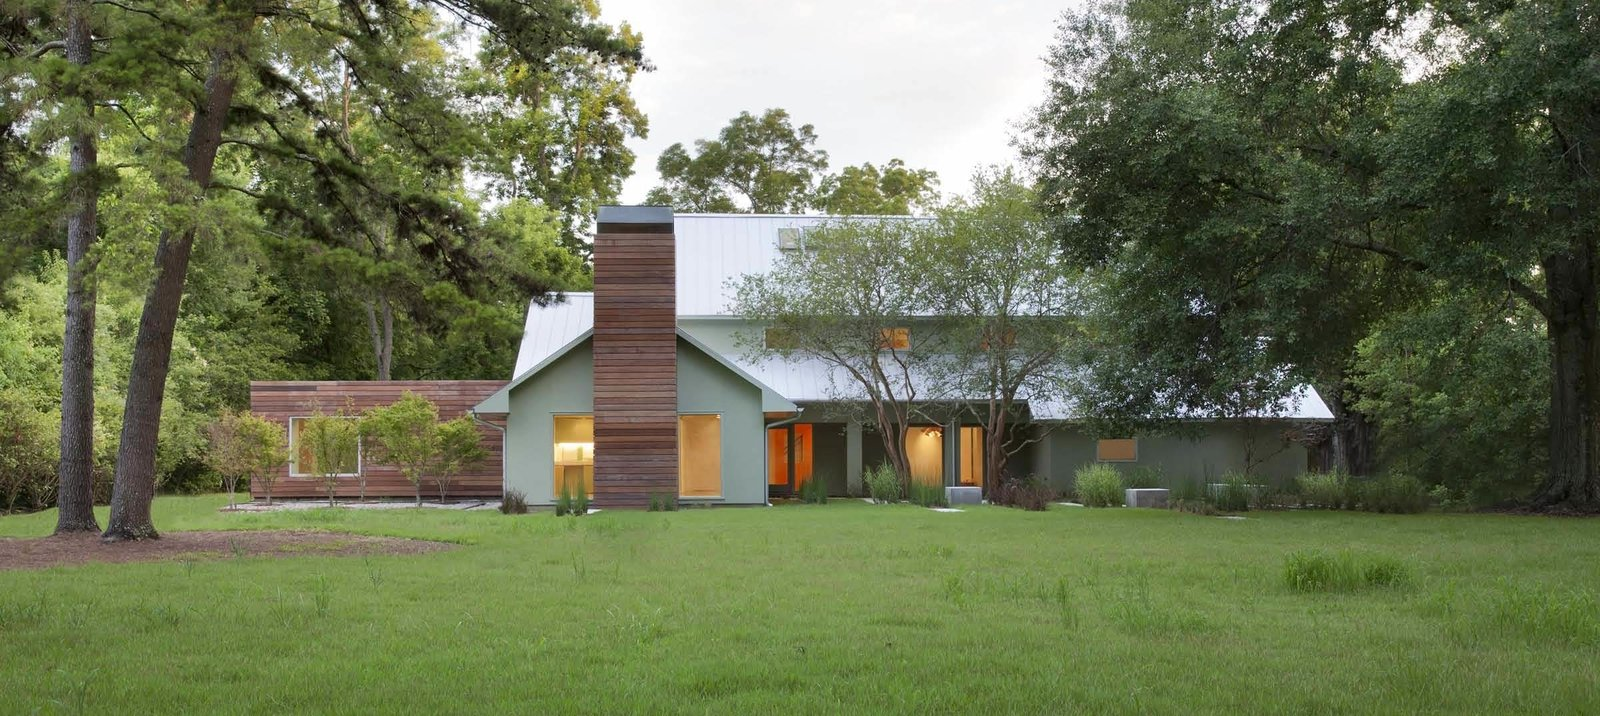 The front elevation reveals two exterior innovations by the architects. Firstly, most Baton Rouge roofs are clad in dark wooden shingles to obscure the mold that will grow in the hot humid climate. This house's metal cladding prevents that growth from occurring while reflecting sunlight and cutting cooling bills. Additionally, a system of exterior ipe slats, with a rainscreen underneath, means the wood will absorb sunlight and keep the additions cool. The ipe will lighten overtime to better match the home's grey exterior.  A Renovation Reconnects a House to its Louisiana Landscape by Zachary Edelson